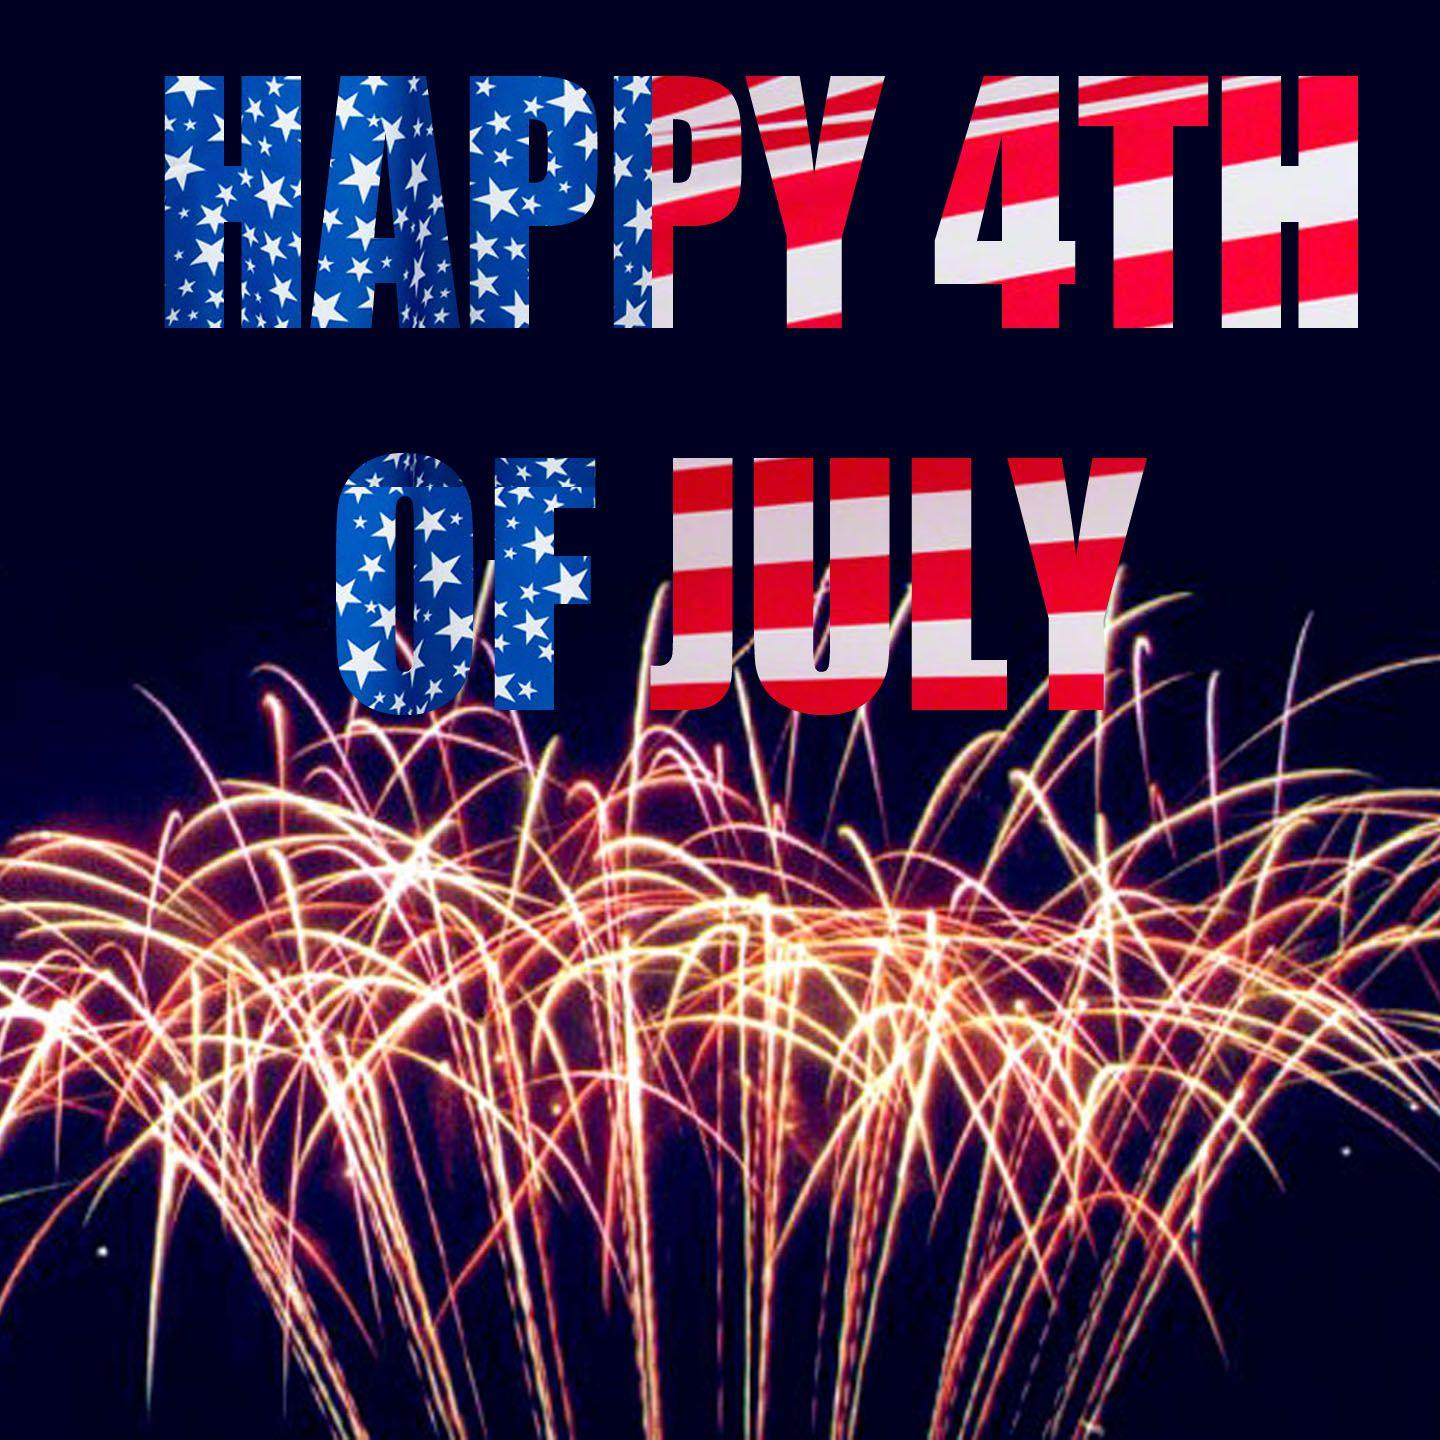 Happy 4th Of July 2019 Wallpapers - Wallpaper Cave